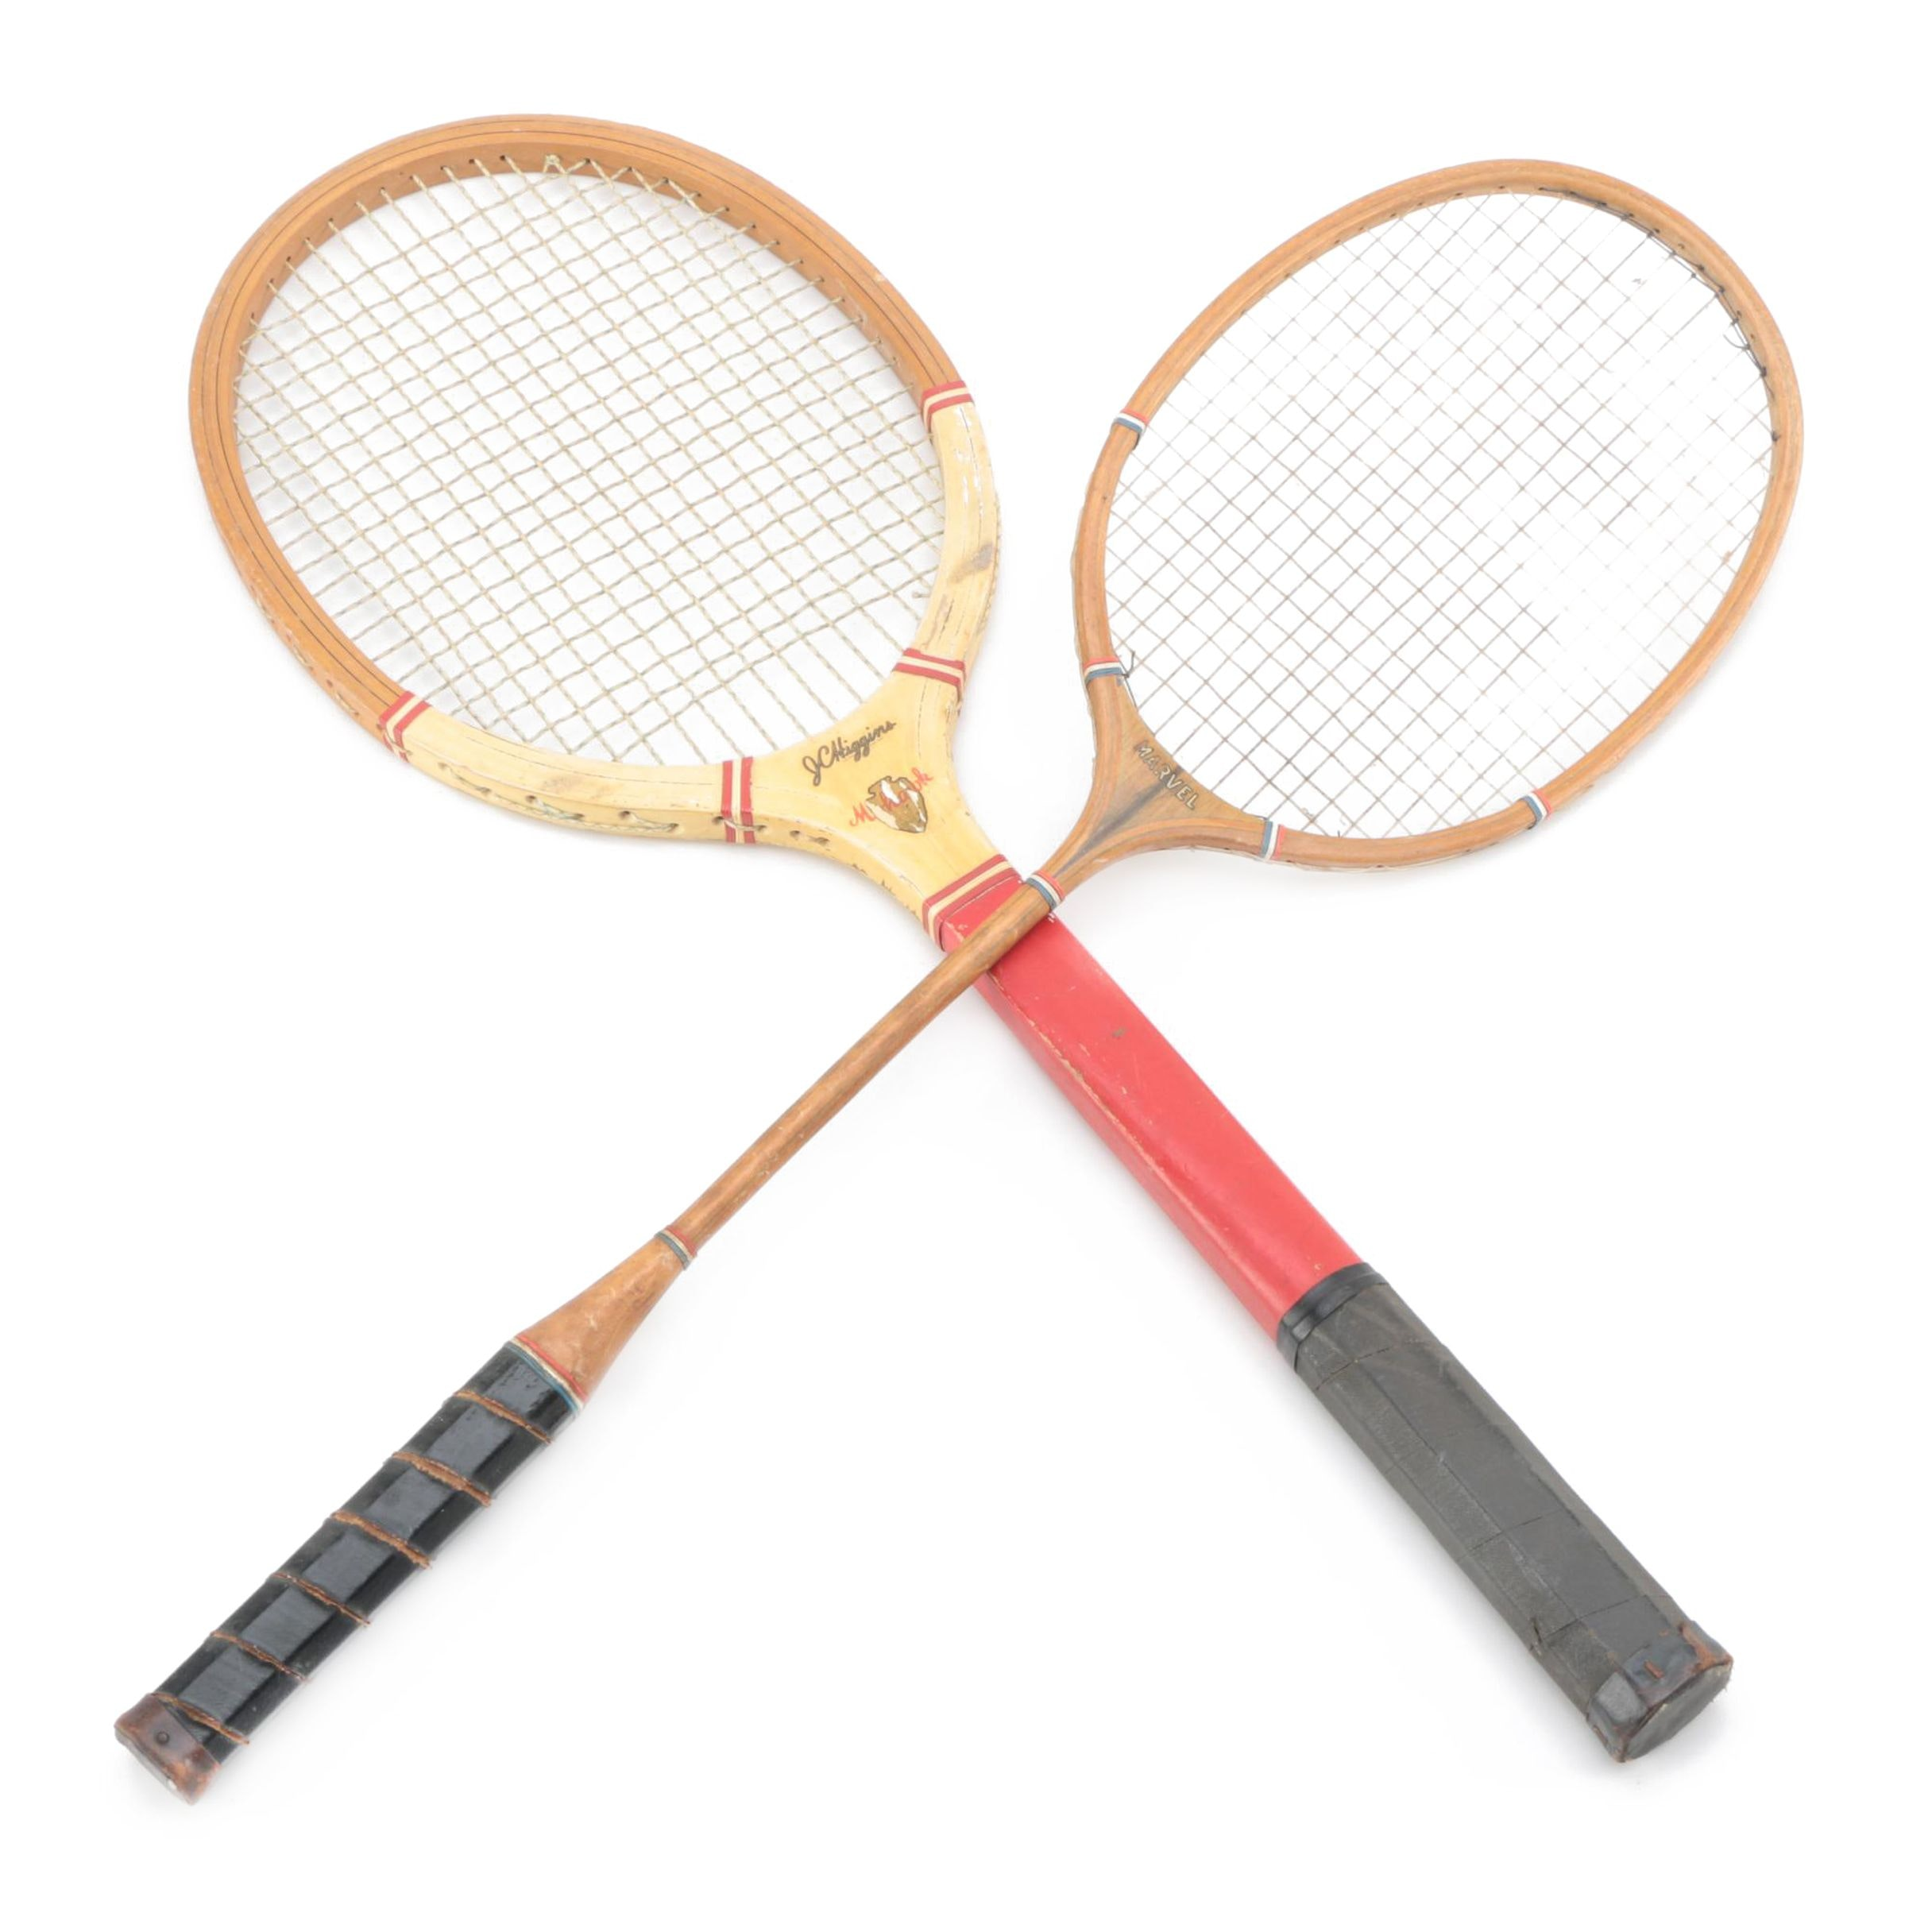 J.C. Higgins Mohawk Tennis Racket and Marvel Badminton Racket